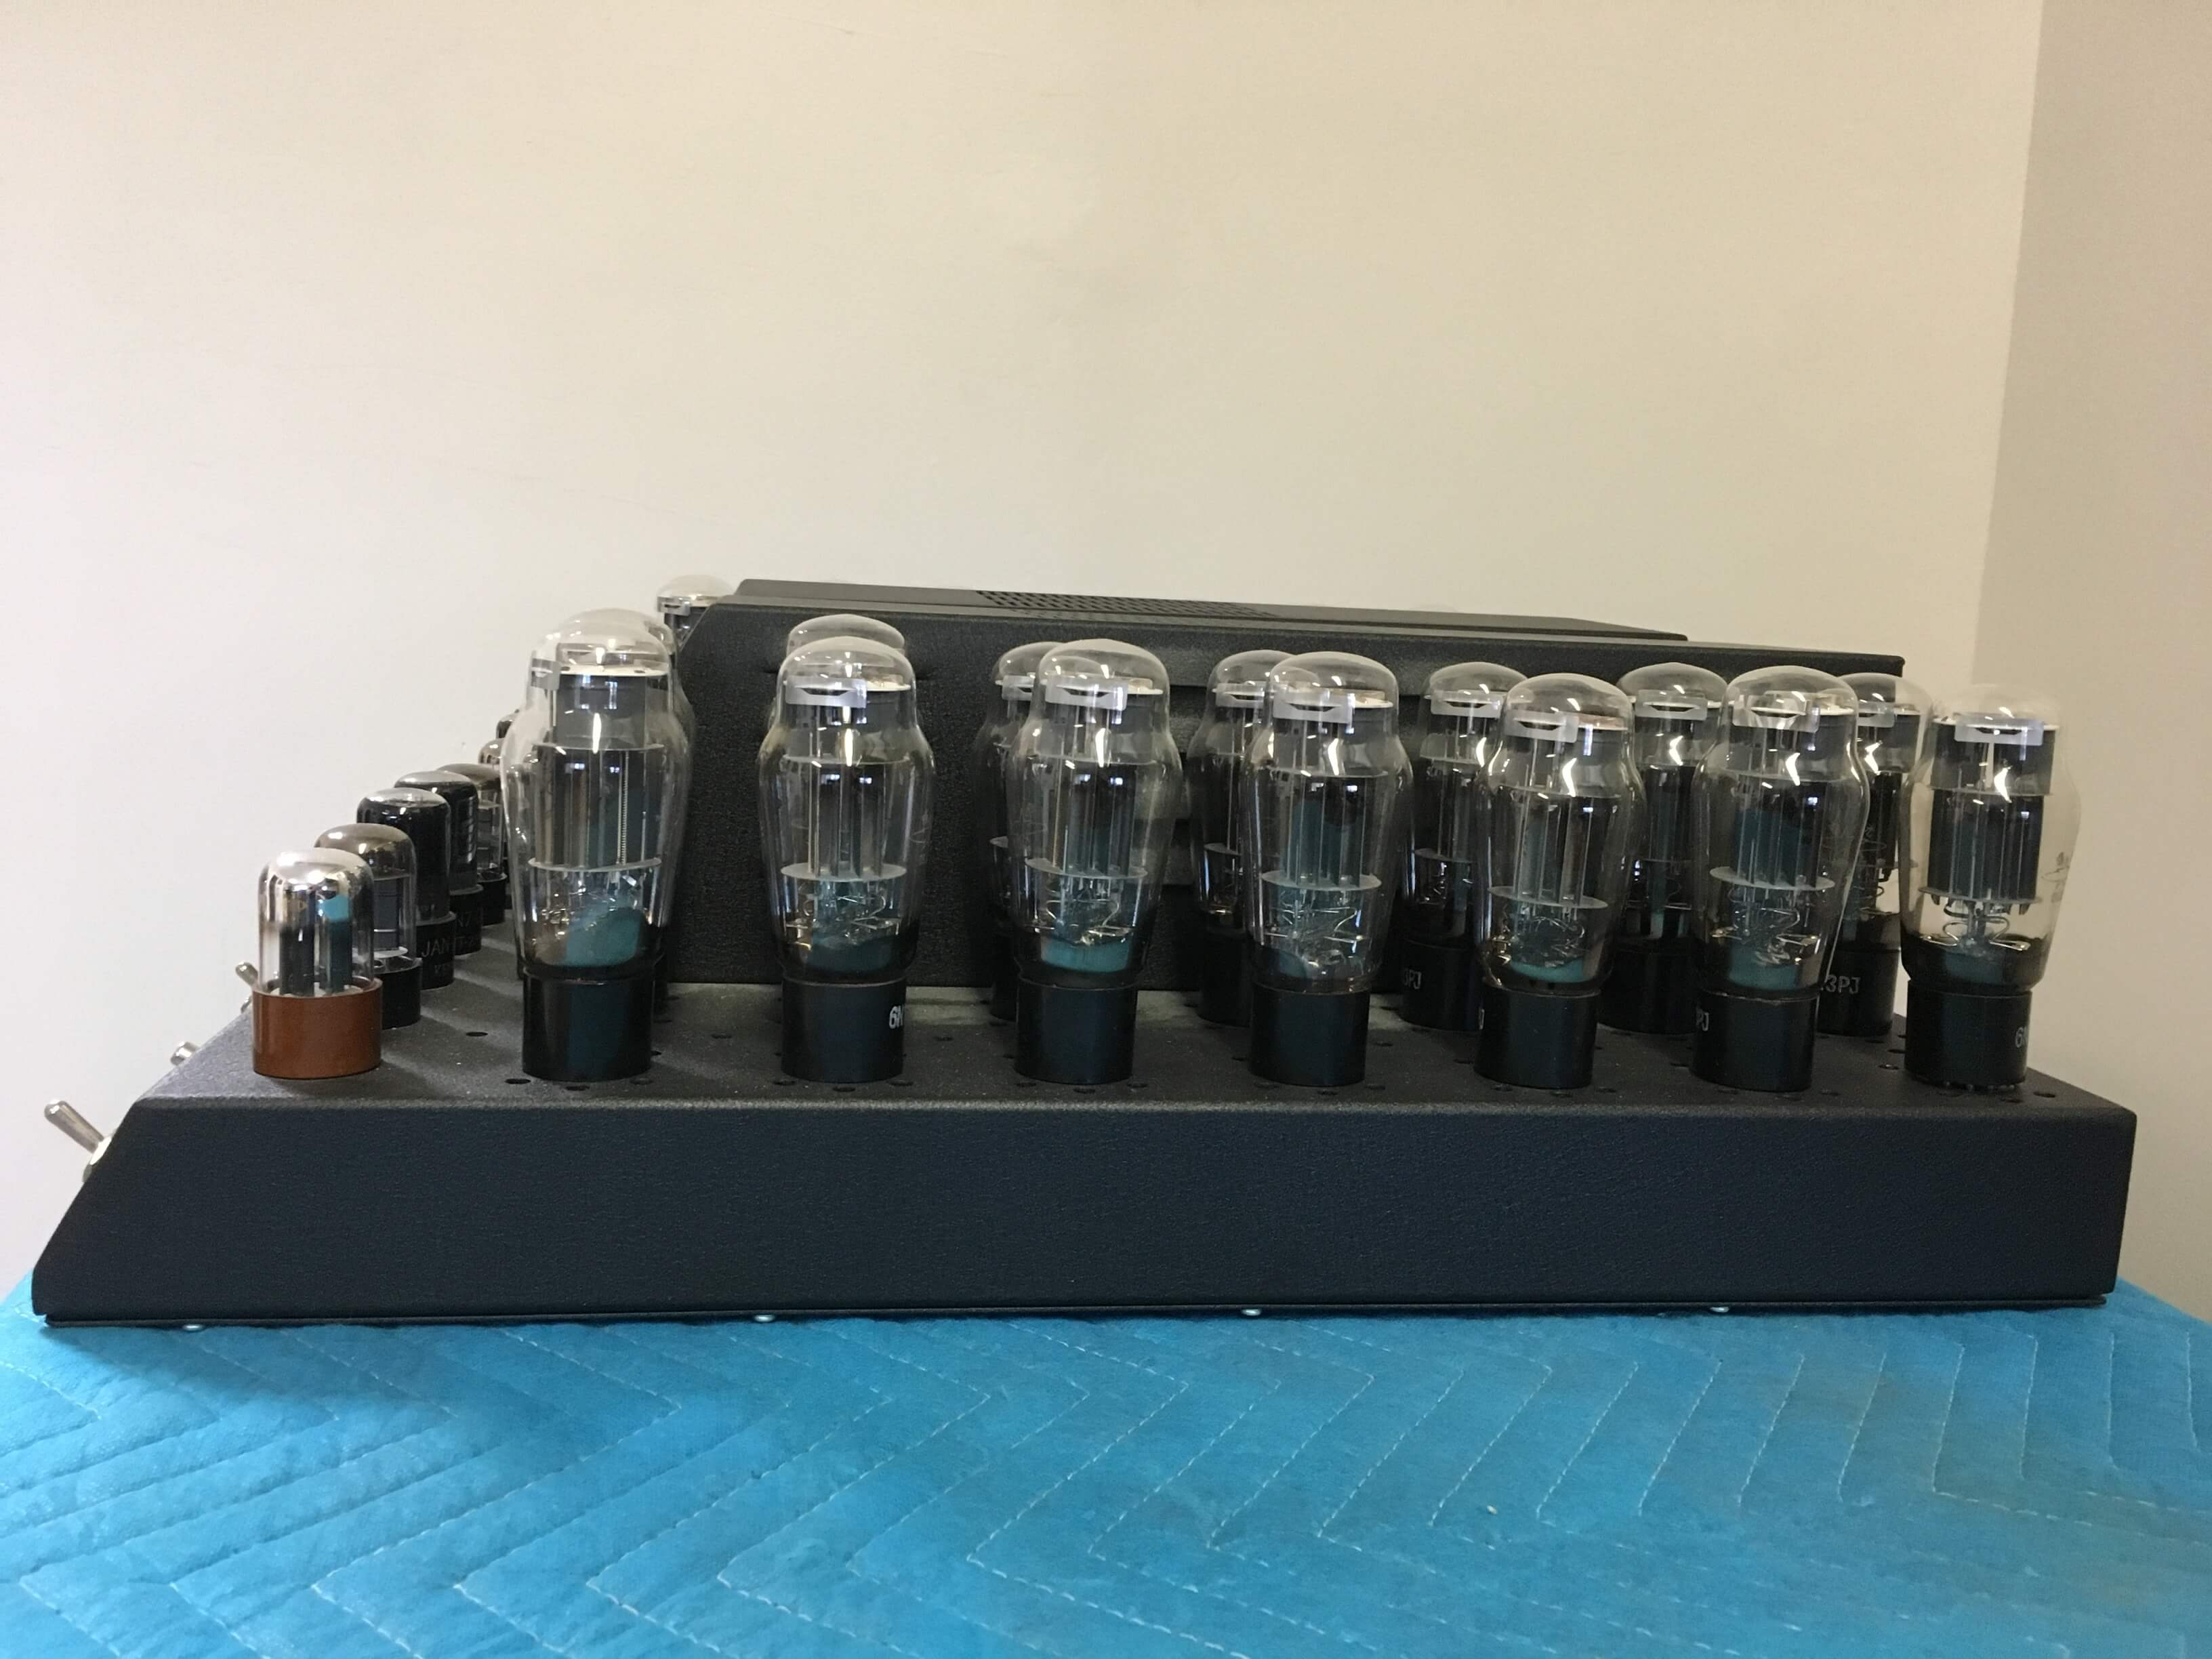 Atma-Sphere Music Systems MA-IMKII tube amplifiers